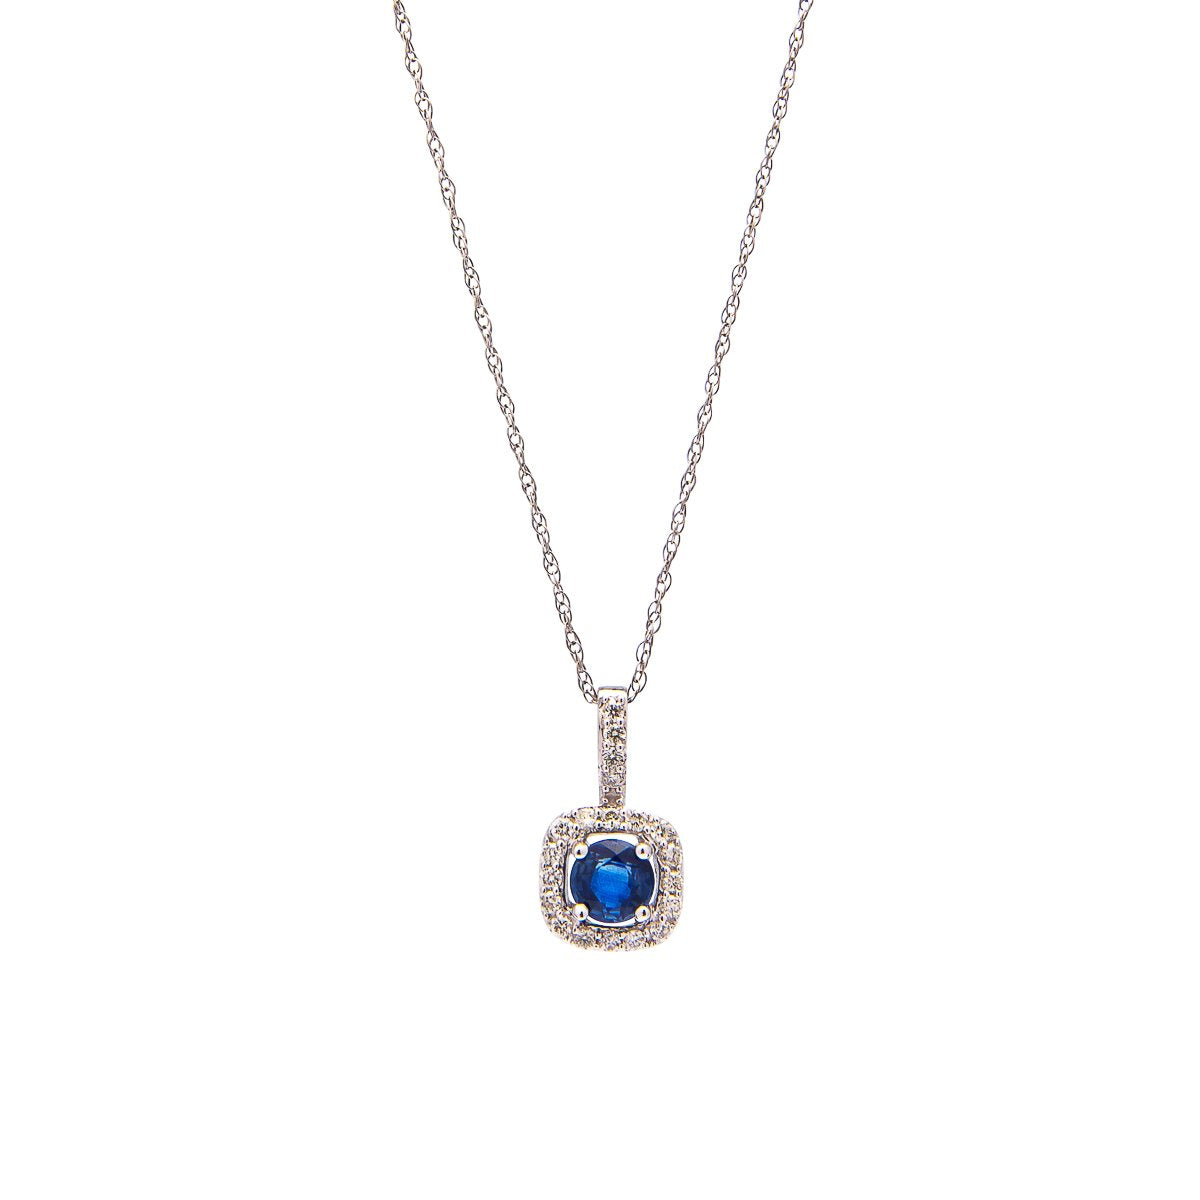 Sabel Collection 14K White Gold Round Sapphire Pendant